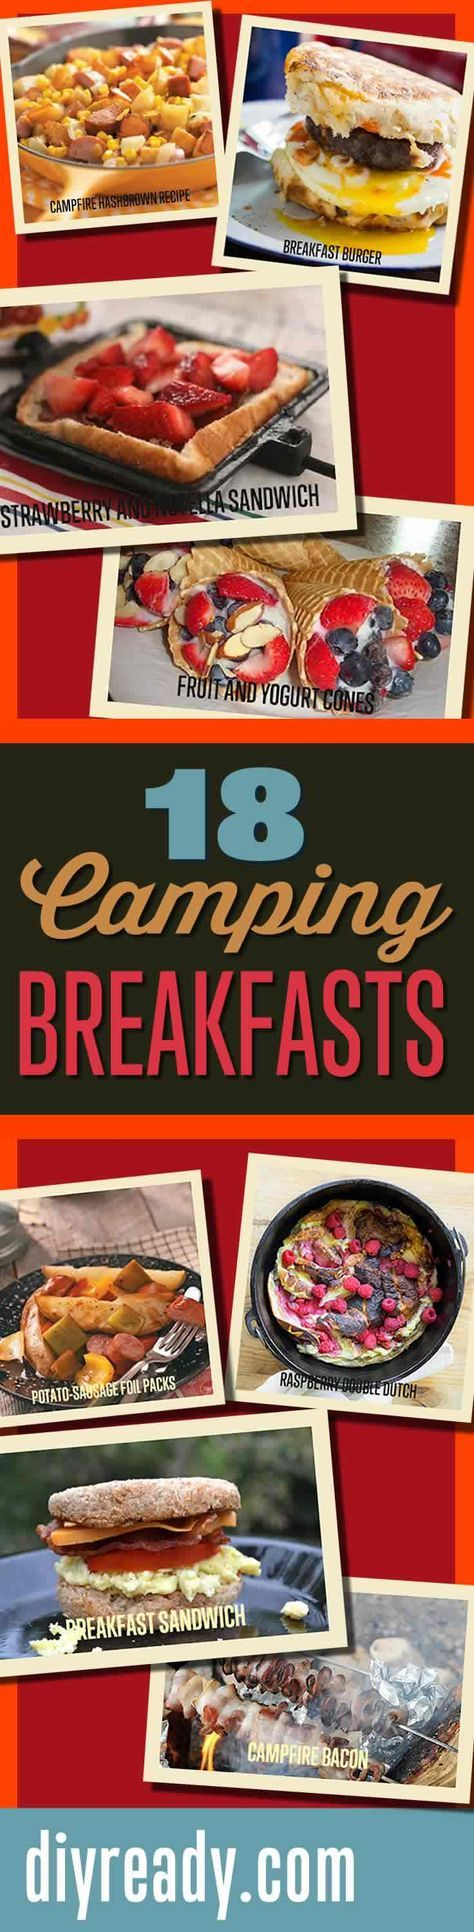 Breakfast Recipes For Campers To Make